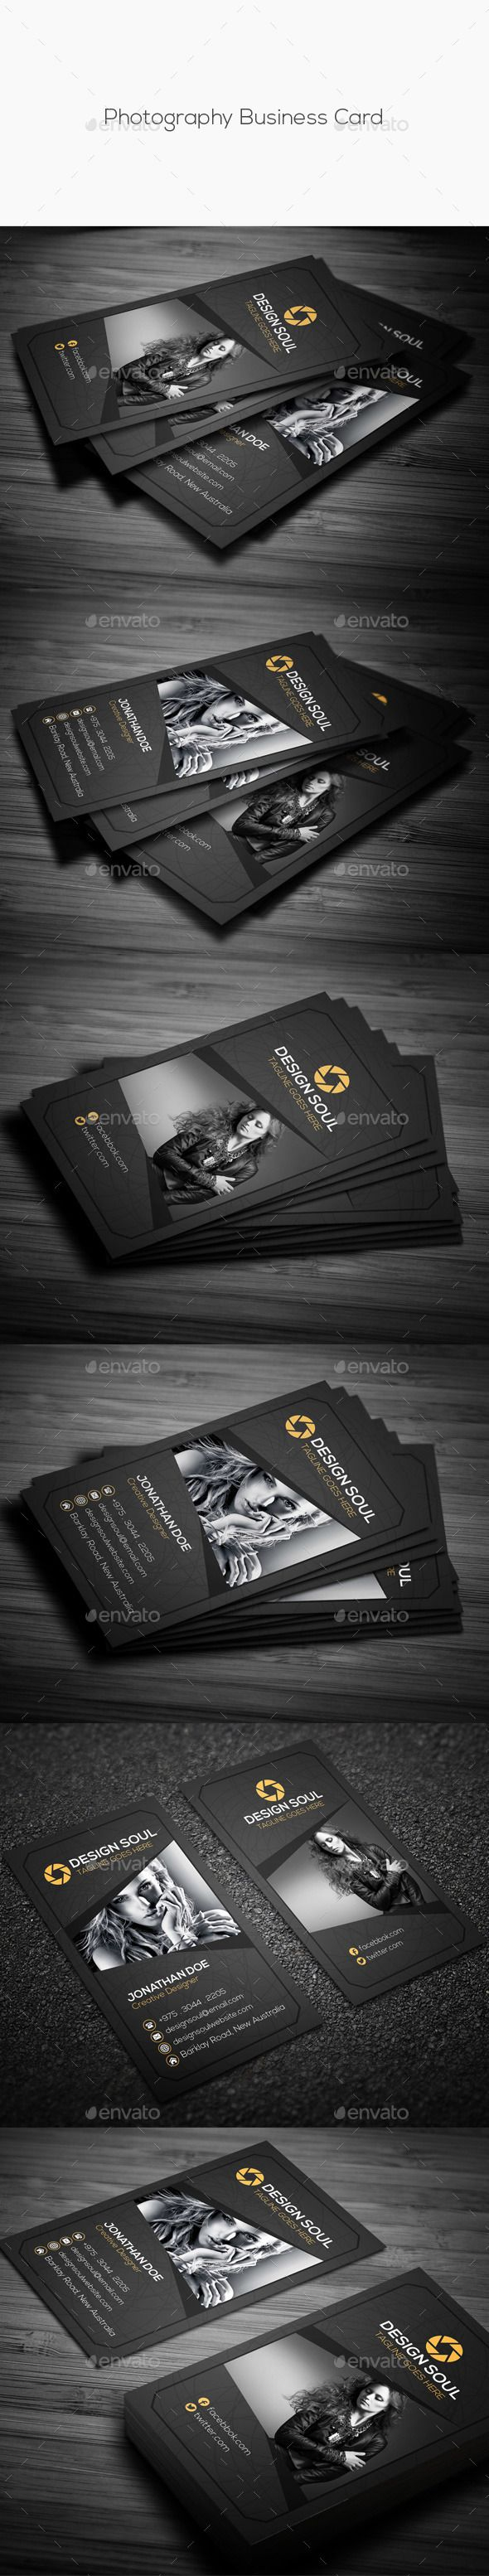 Photography business card creative business card template psd photography business card creative business card template psd download here http flashek Choice Image